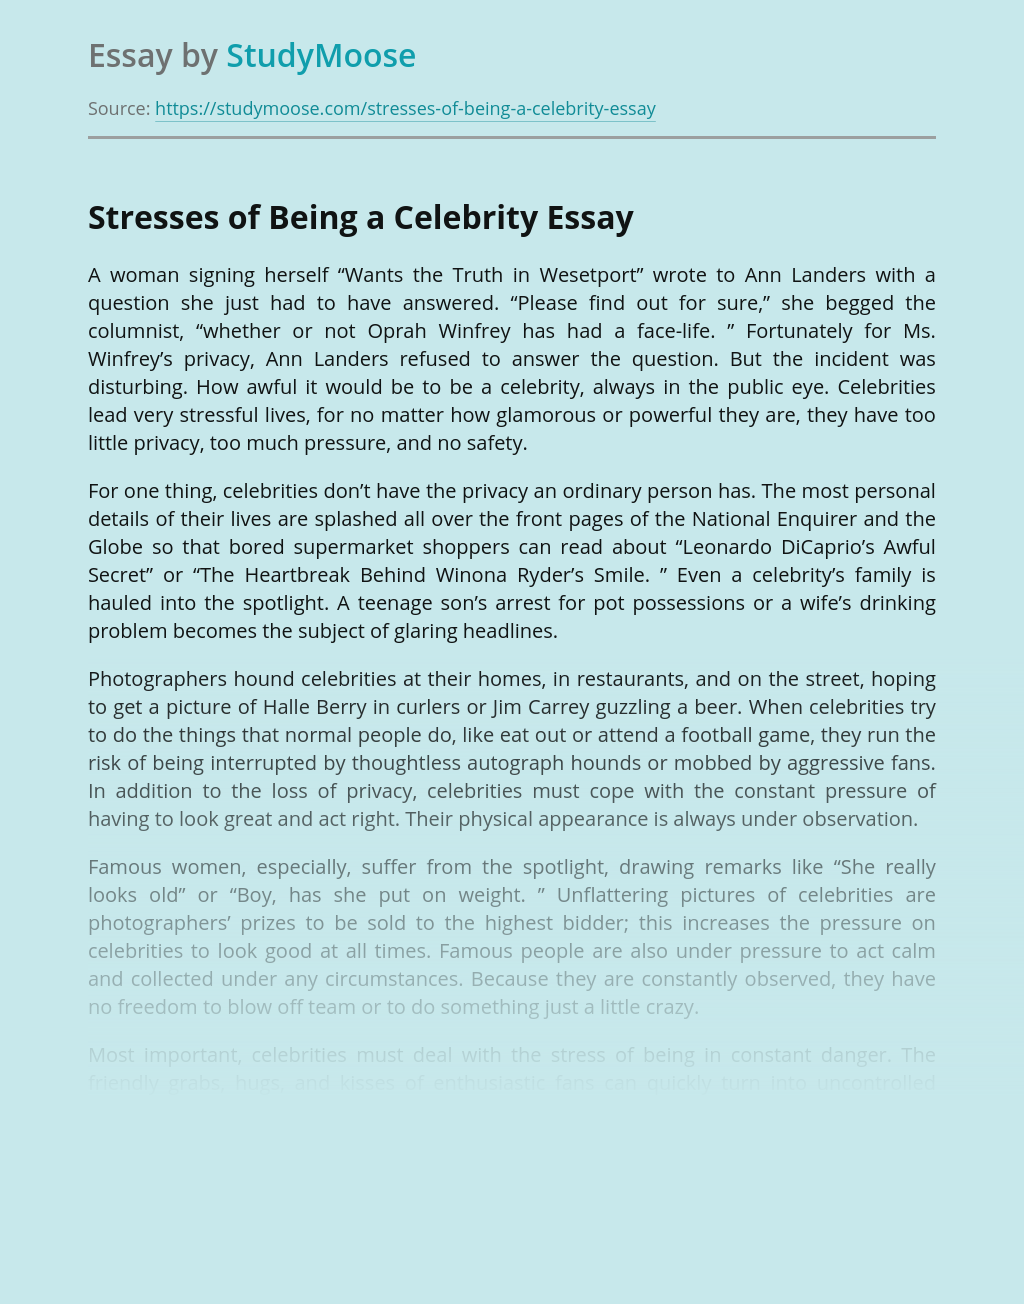 Stresses of Being a Celebrity